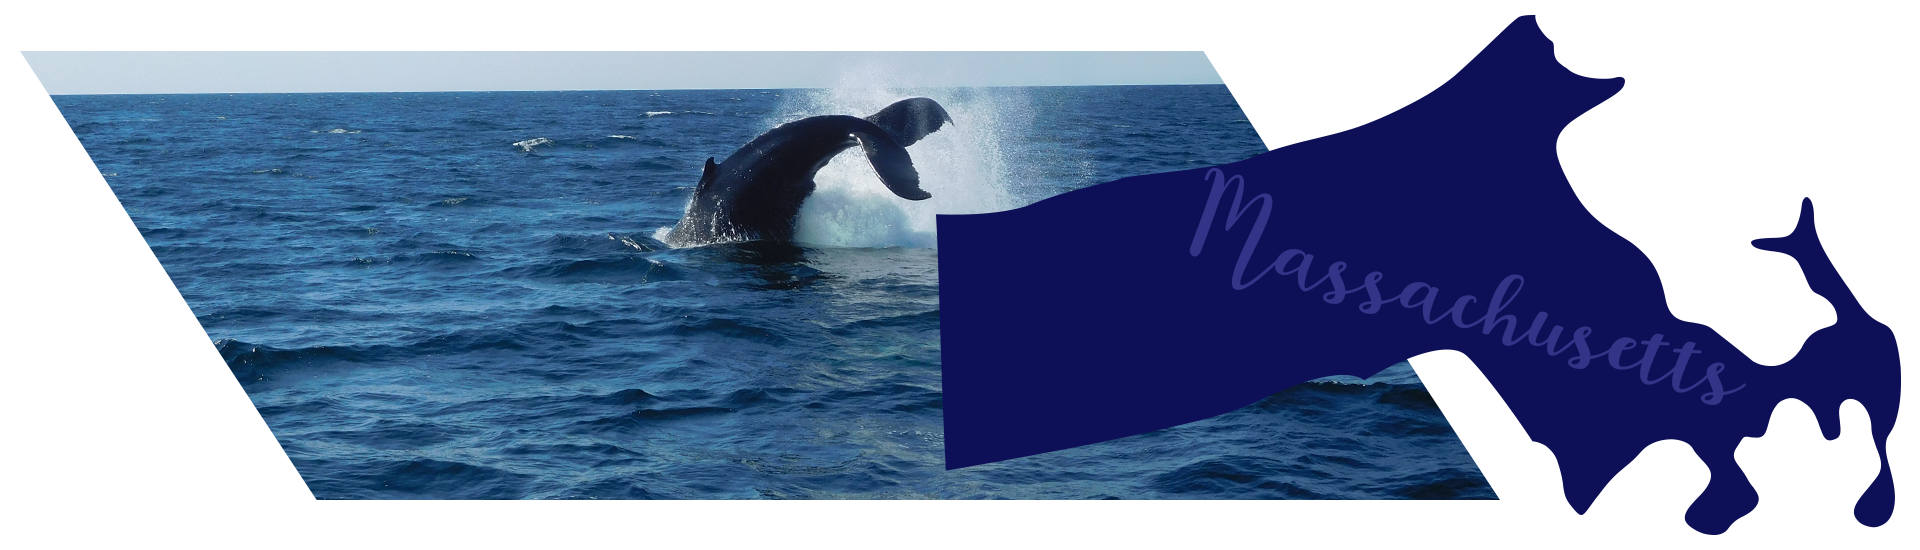 Whale watching at the Stellwagen Bank National Marine Sanctuary in Cape Cod, Massachusetts